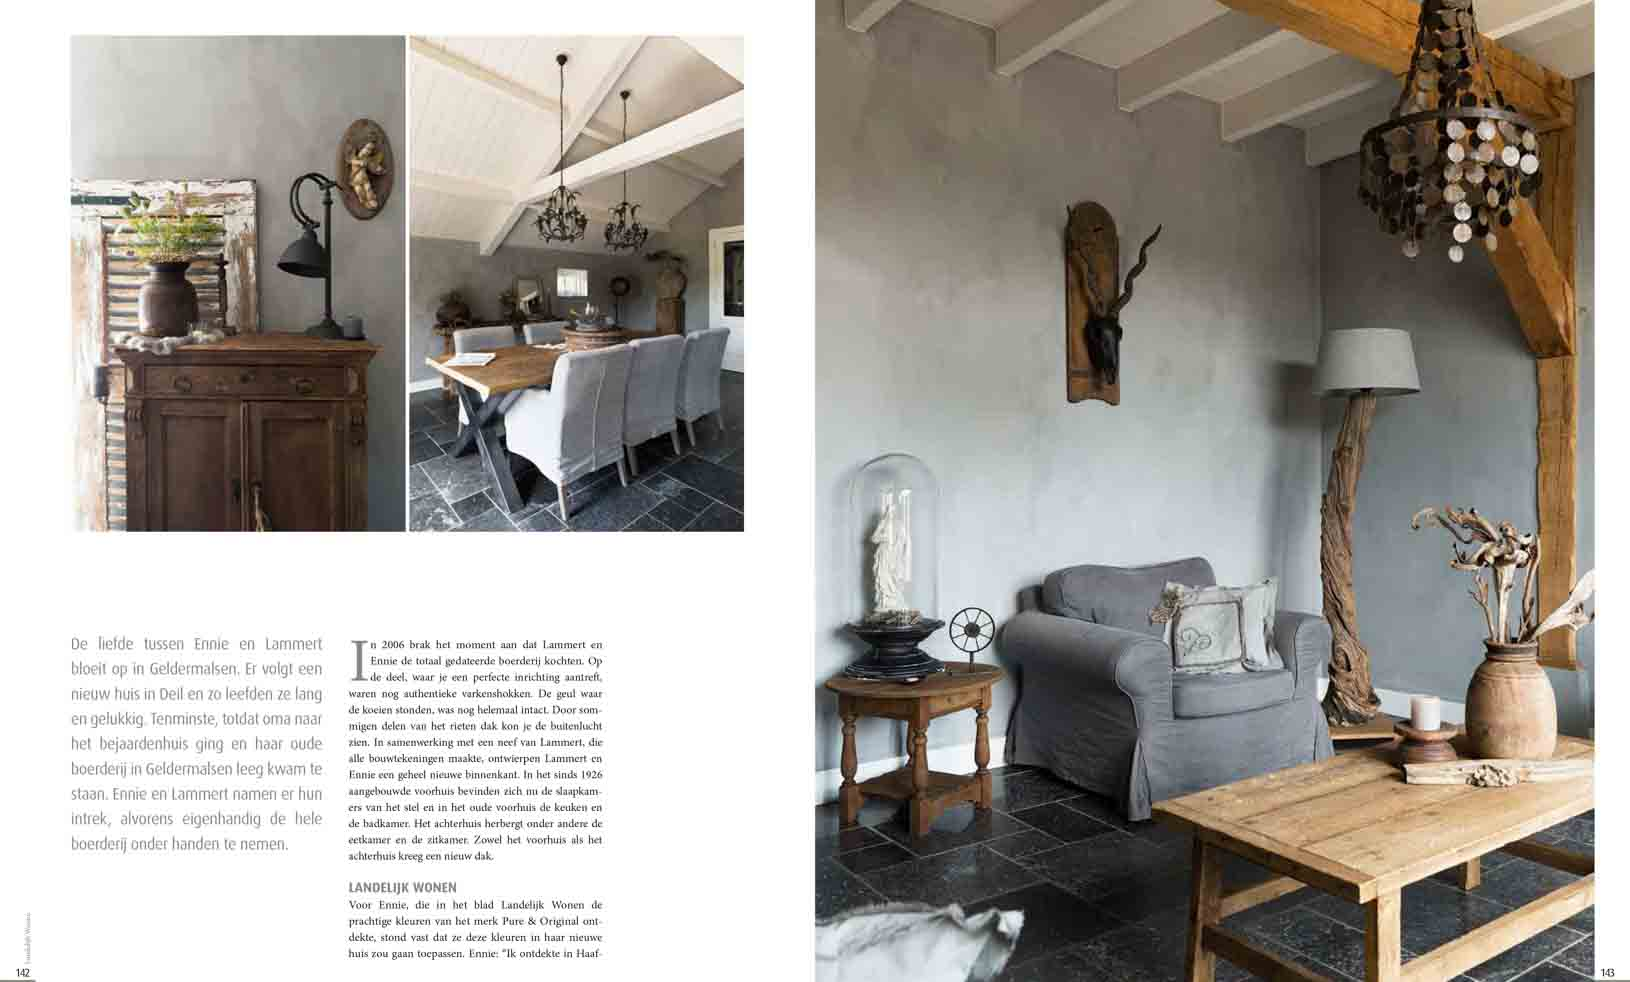 Look inside this beautiful country home